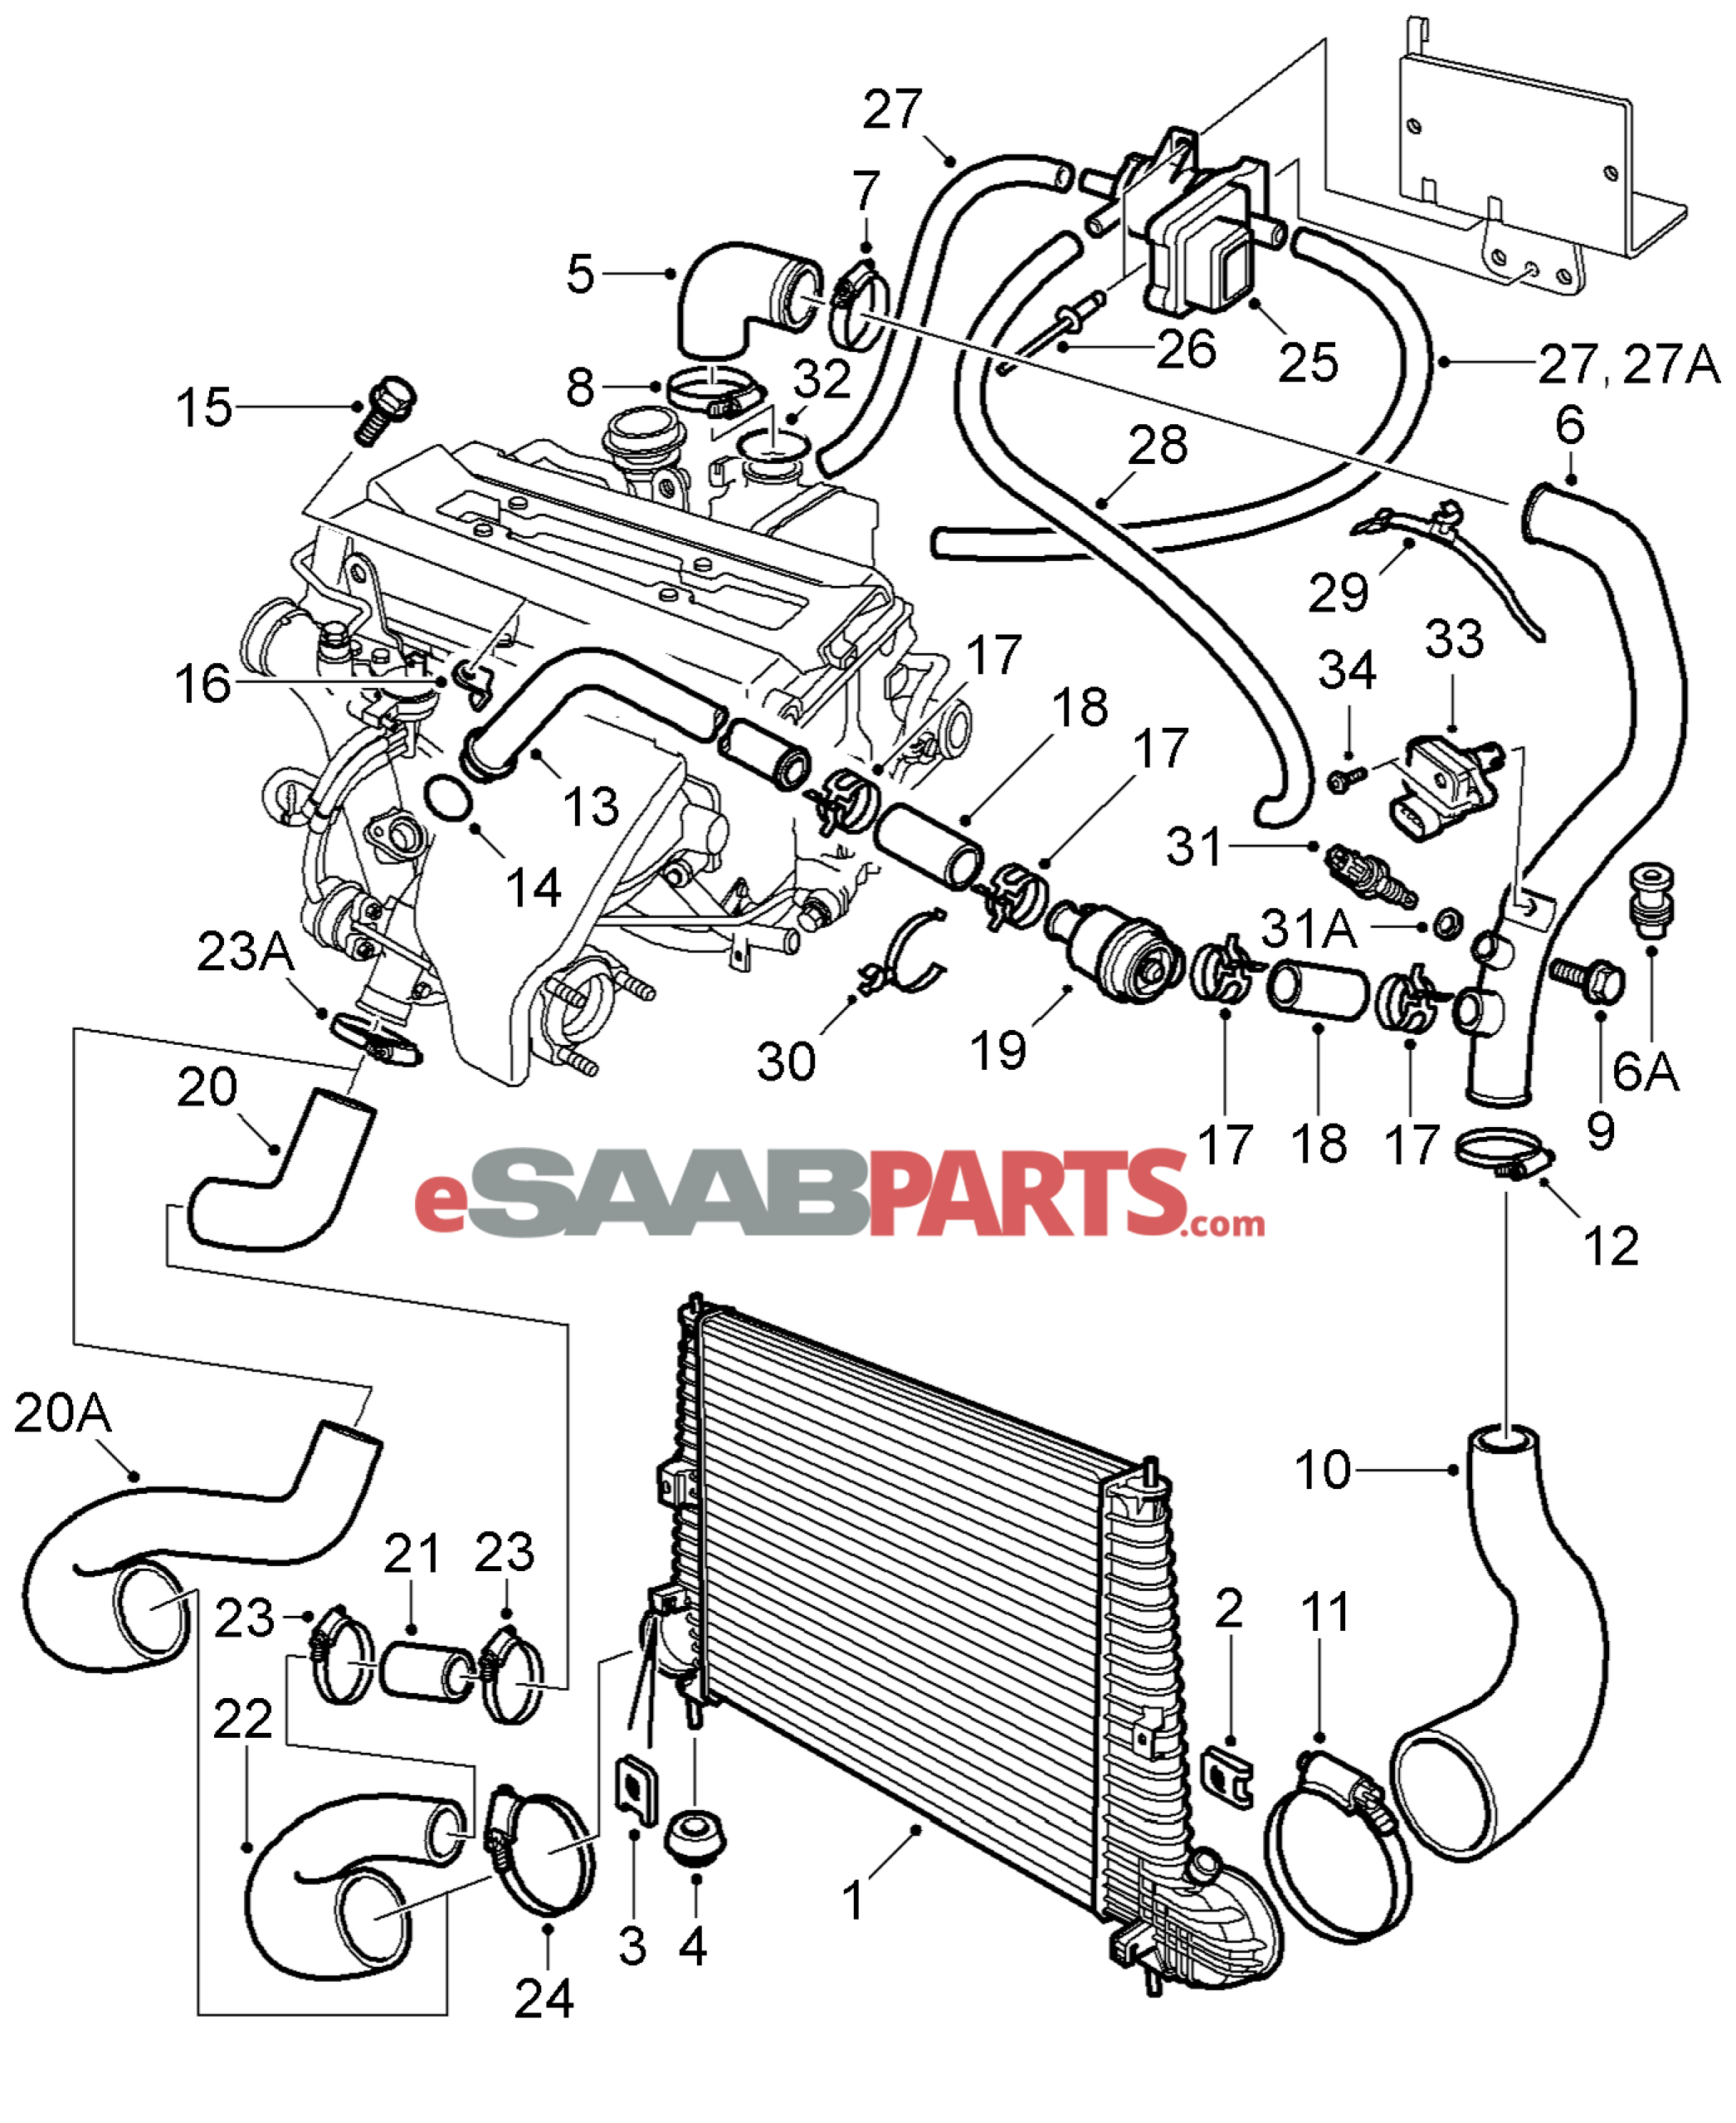 ls2 vacuum diagram electrical wiring diagram 1970 Cadillac Vacuum Diagram 55562854 saab vacuum valve genuine saab parts from ls1 pulley diagram ls3 engine diagram